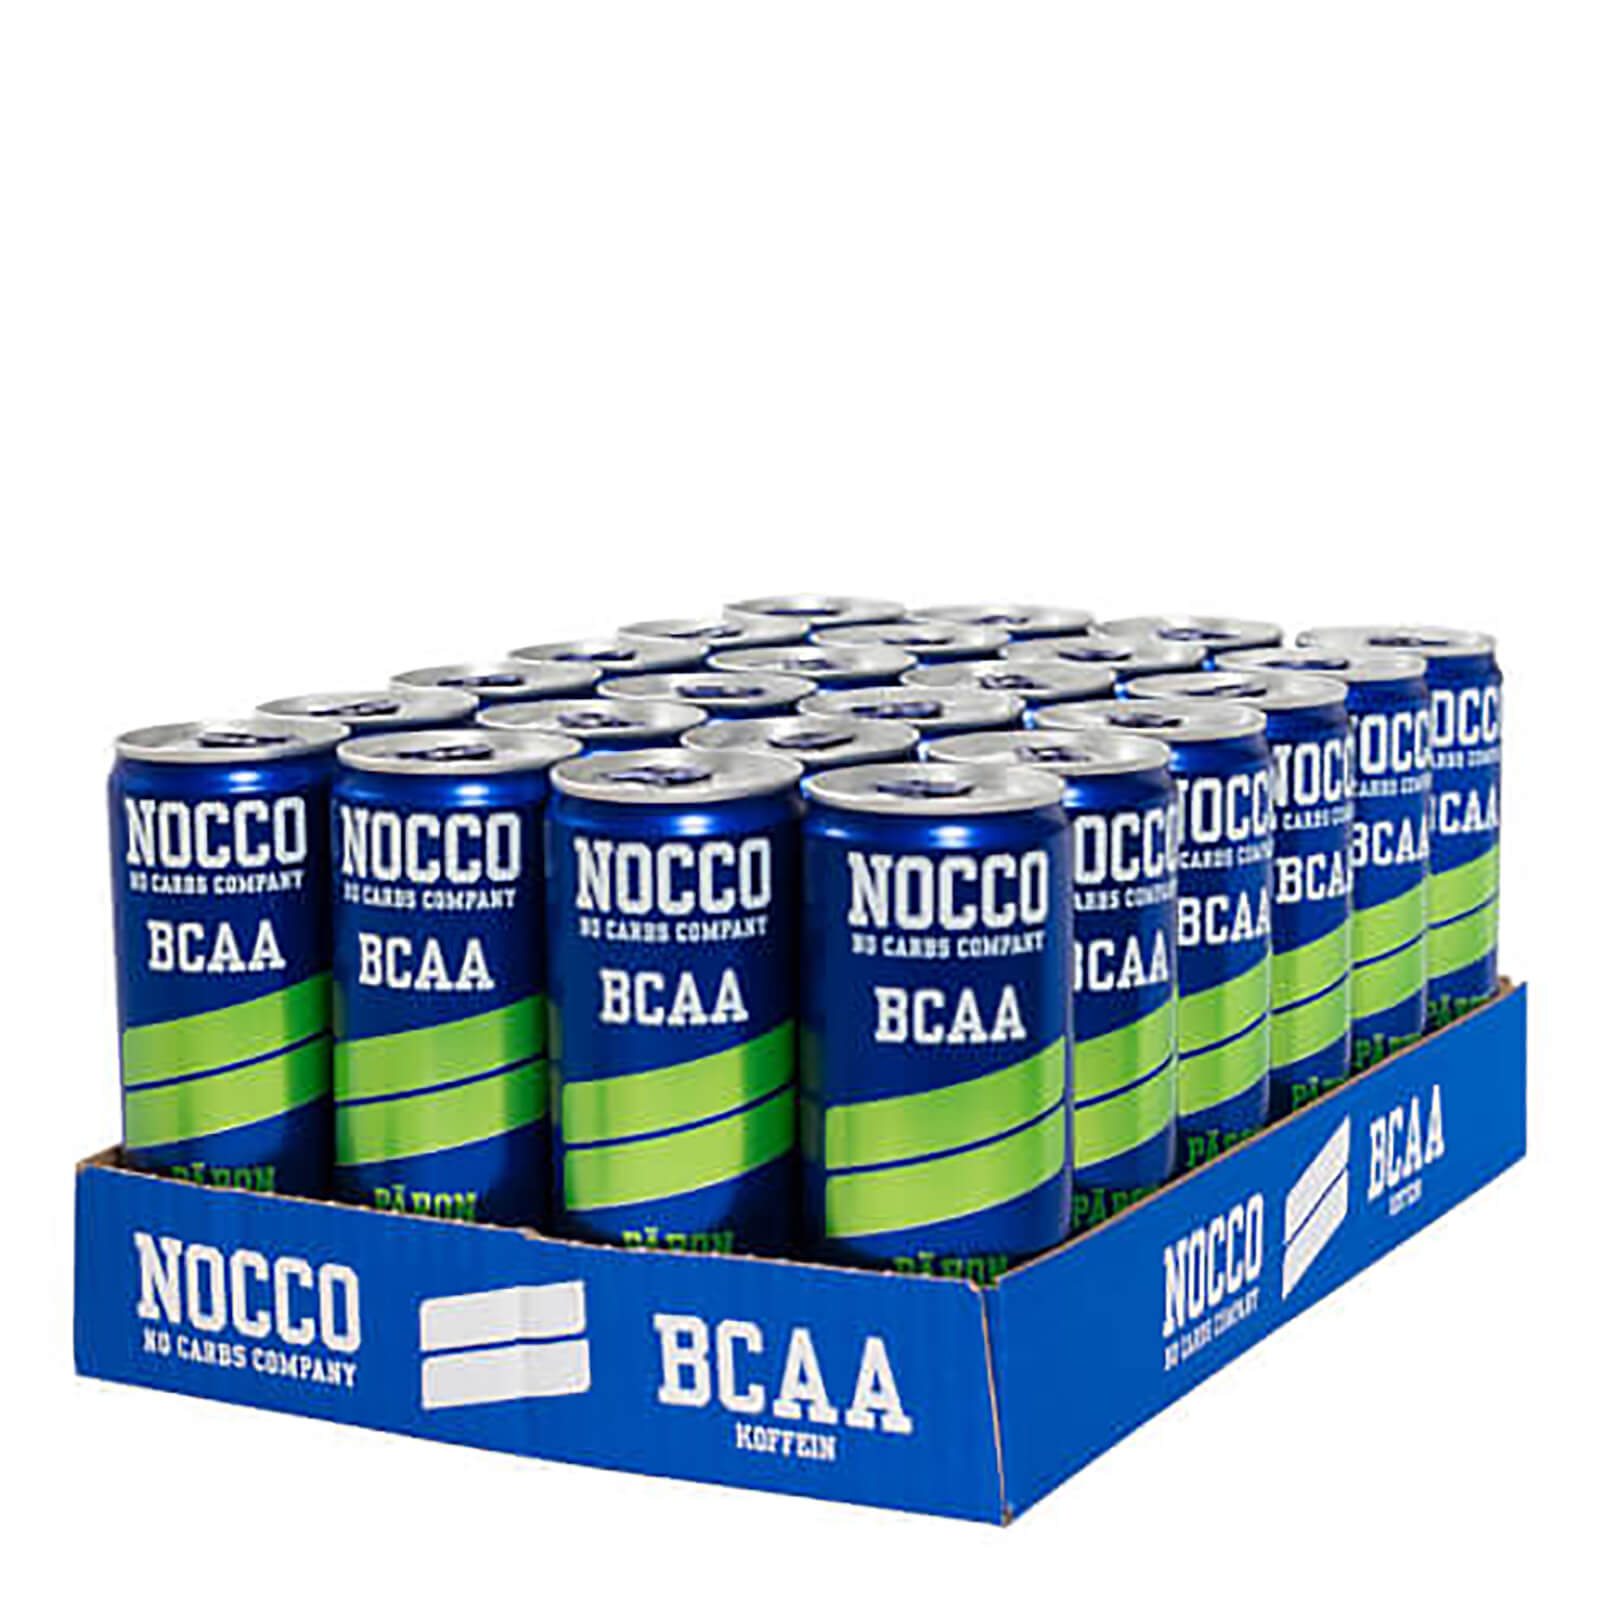 NOCCO BCAA, 24 x 330ml Can